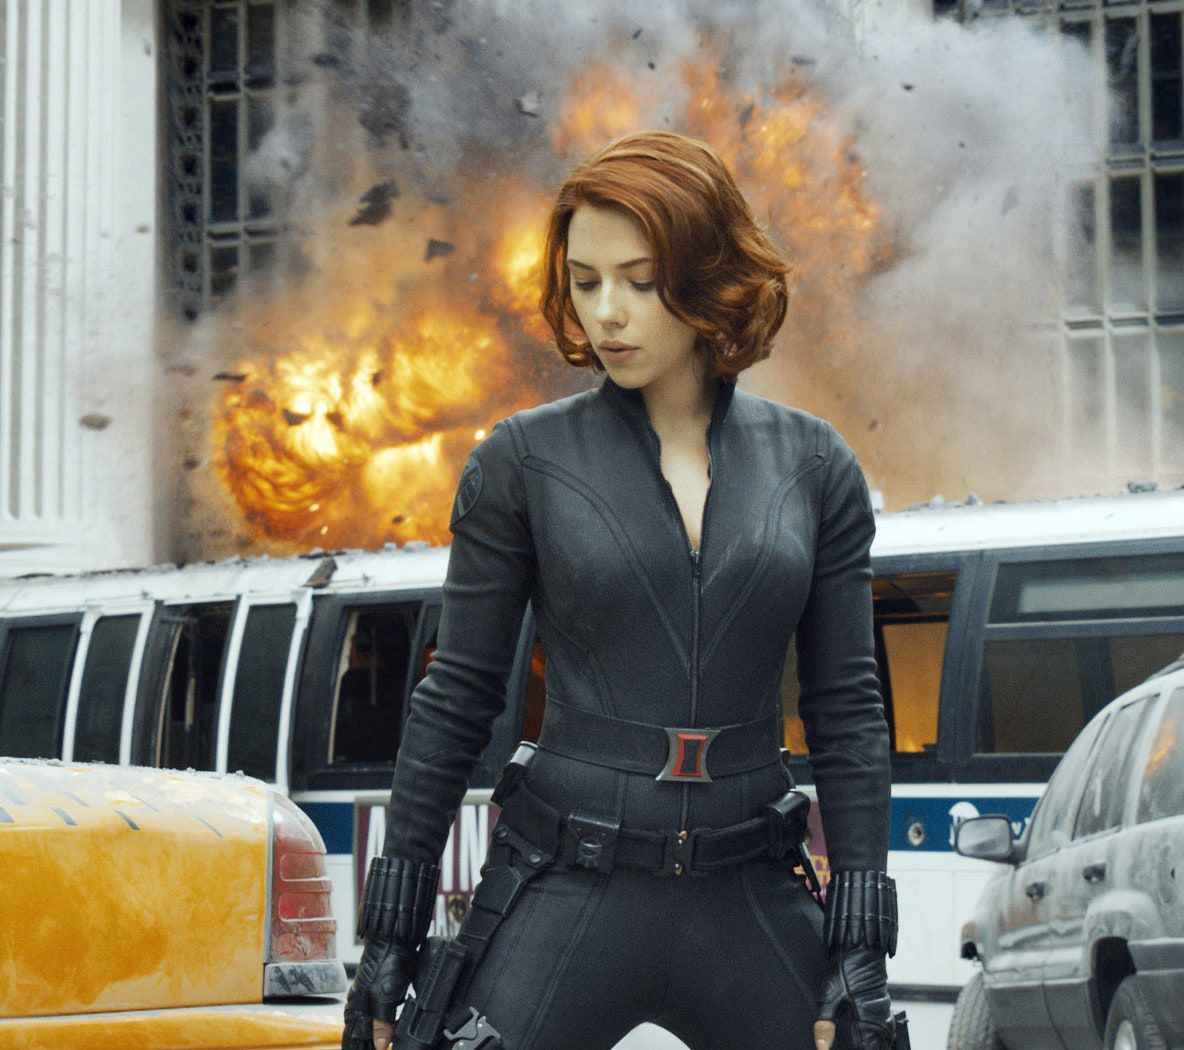 Disney says it will release big movies like Black Widow in movie theaters,  even during the coronavirus pandemic - Vox